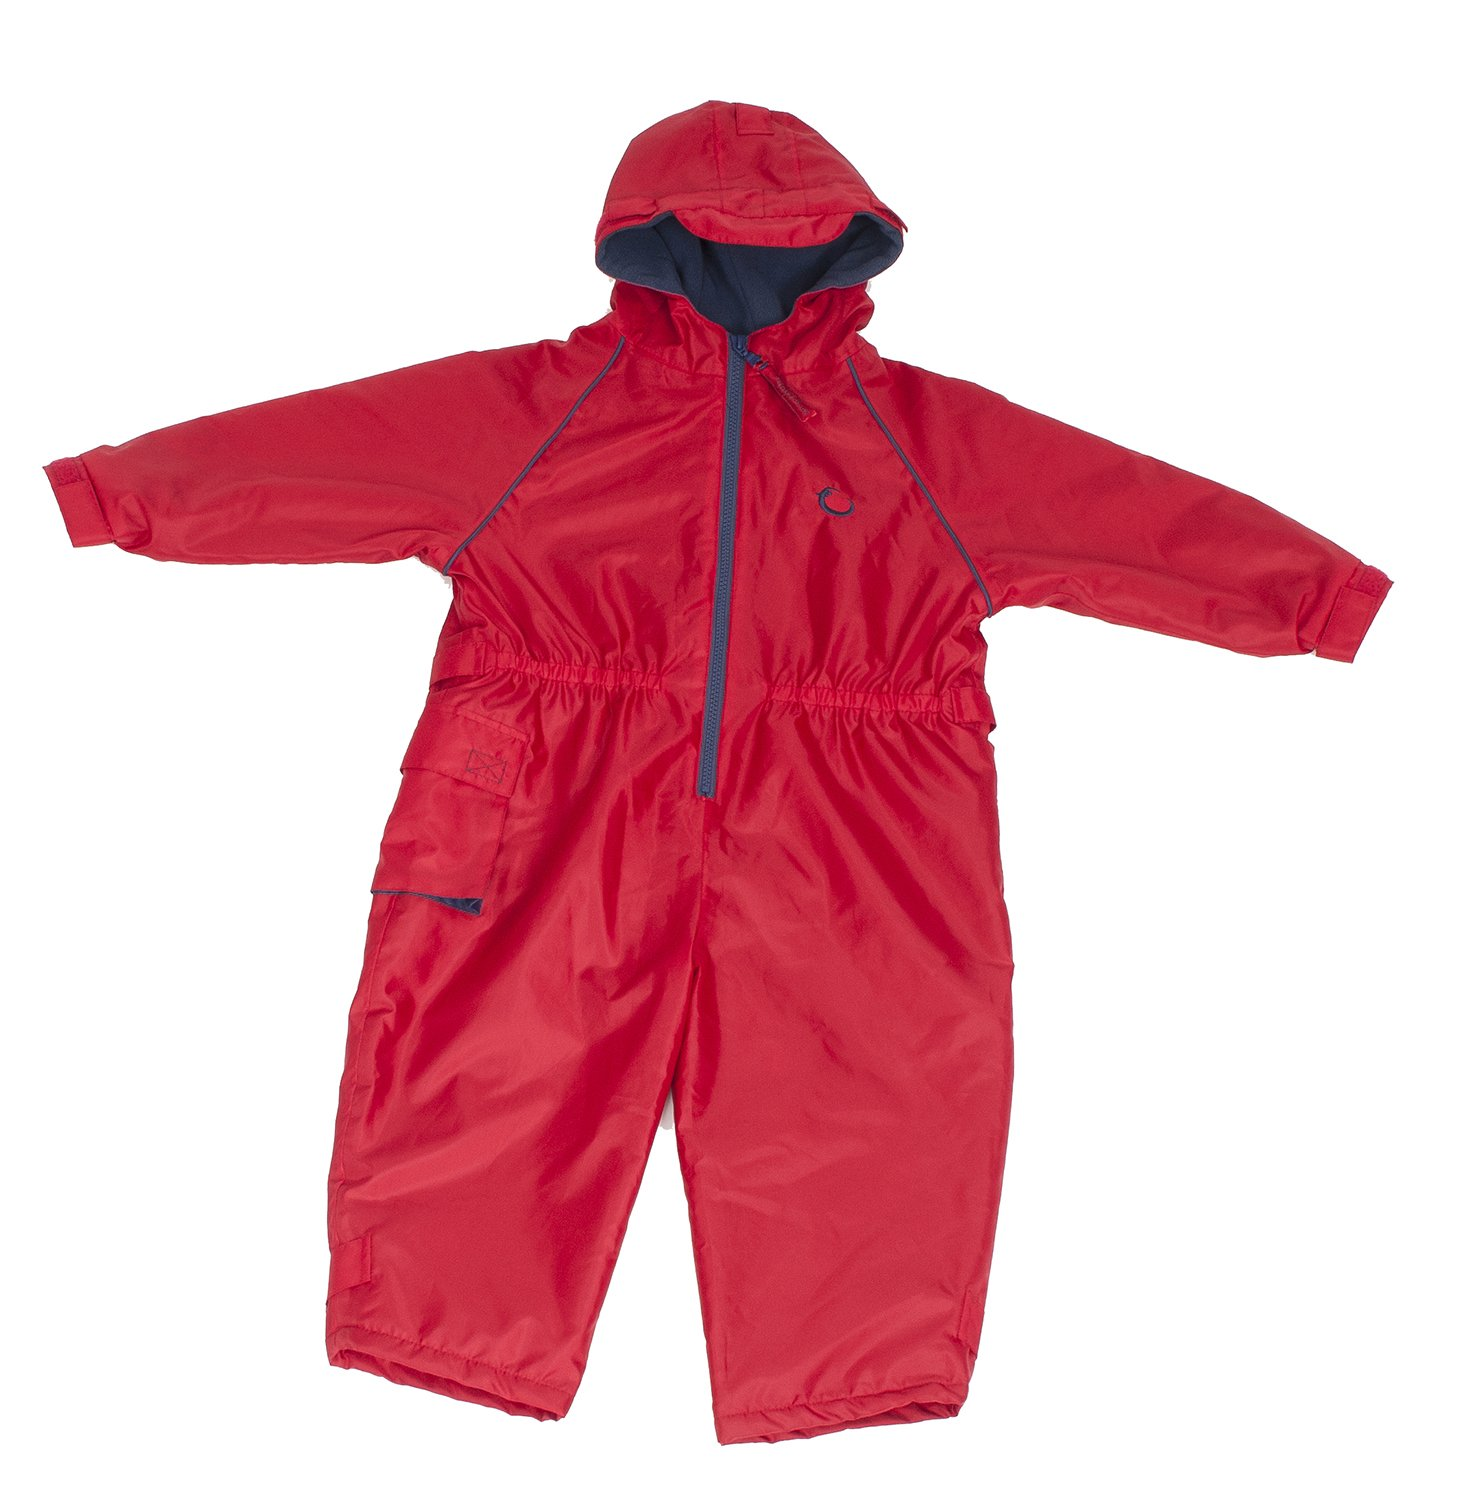 Hippychick Fleece Lined Waterproof All-in-One Suit - Red, 12-18 Months HWNARF12-18 5060248816738